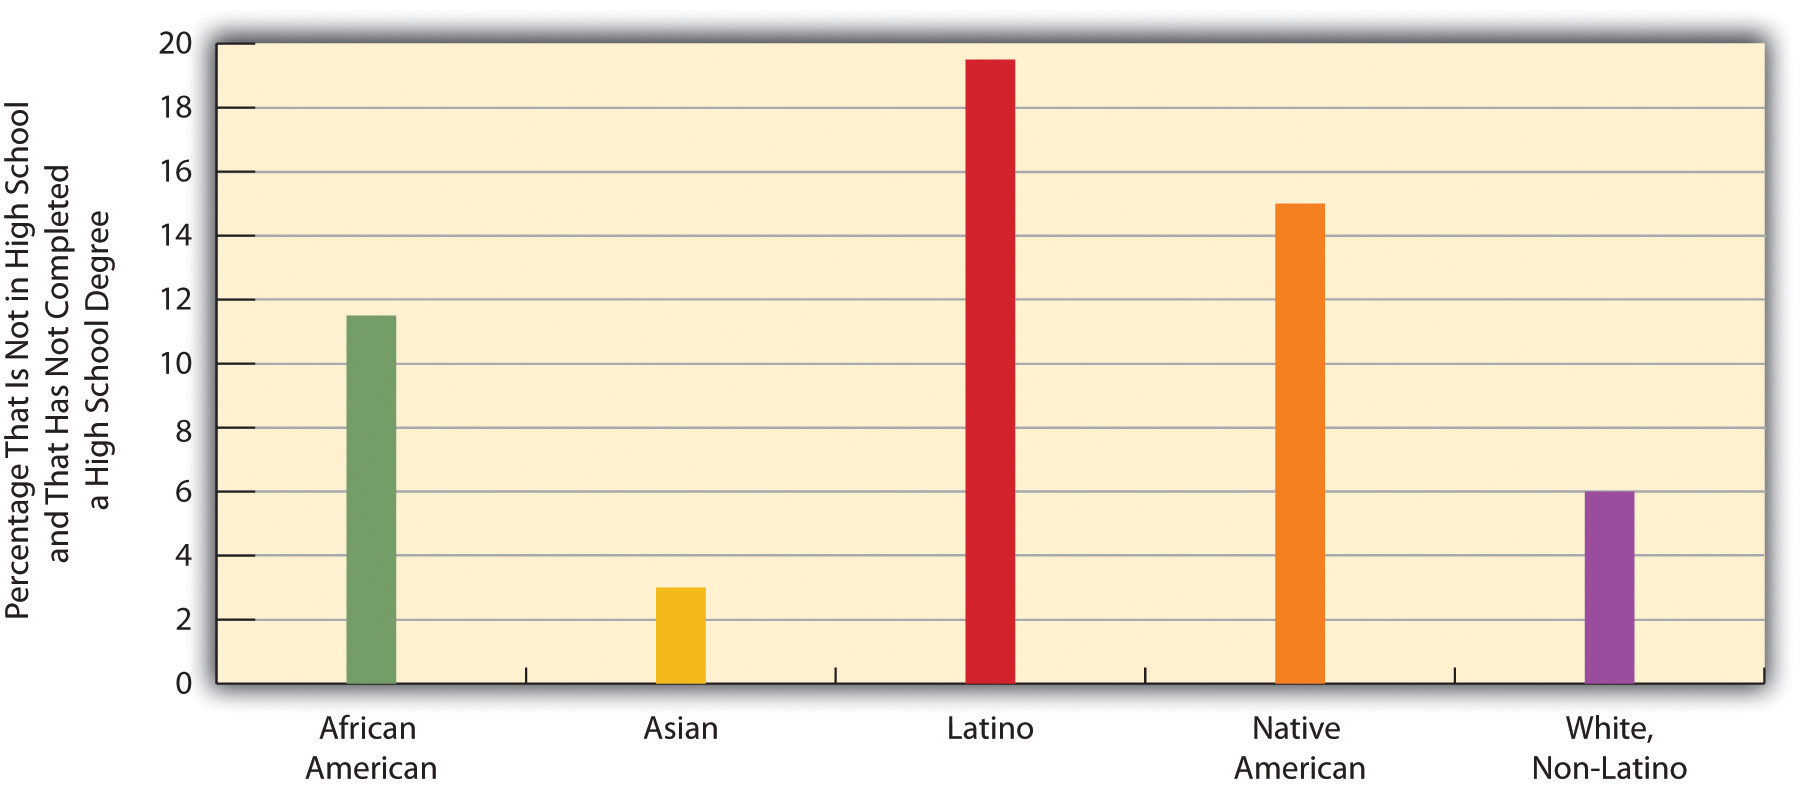 Race, Ethnicity, and High School Dropout Rate, 16-24-Year-Olds, 2007